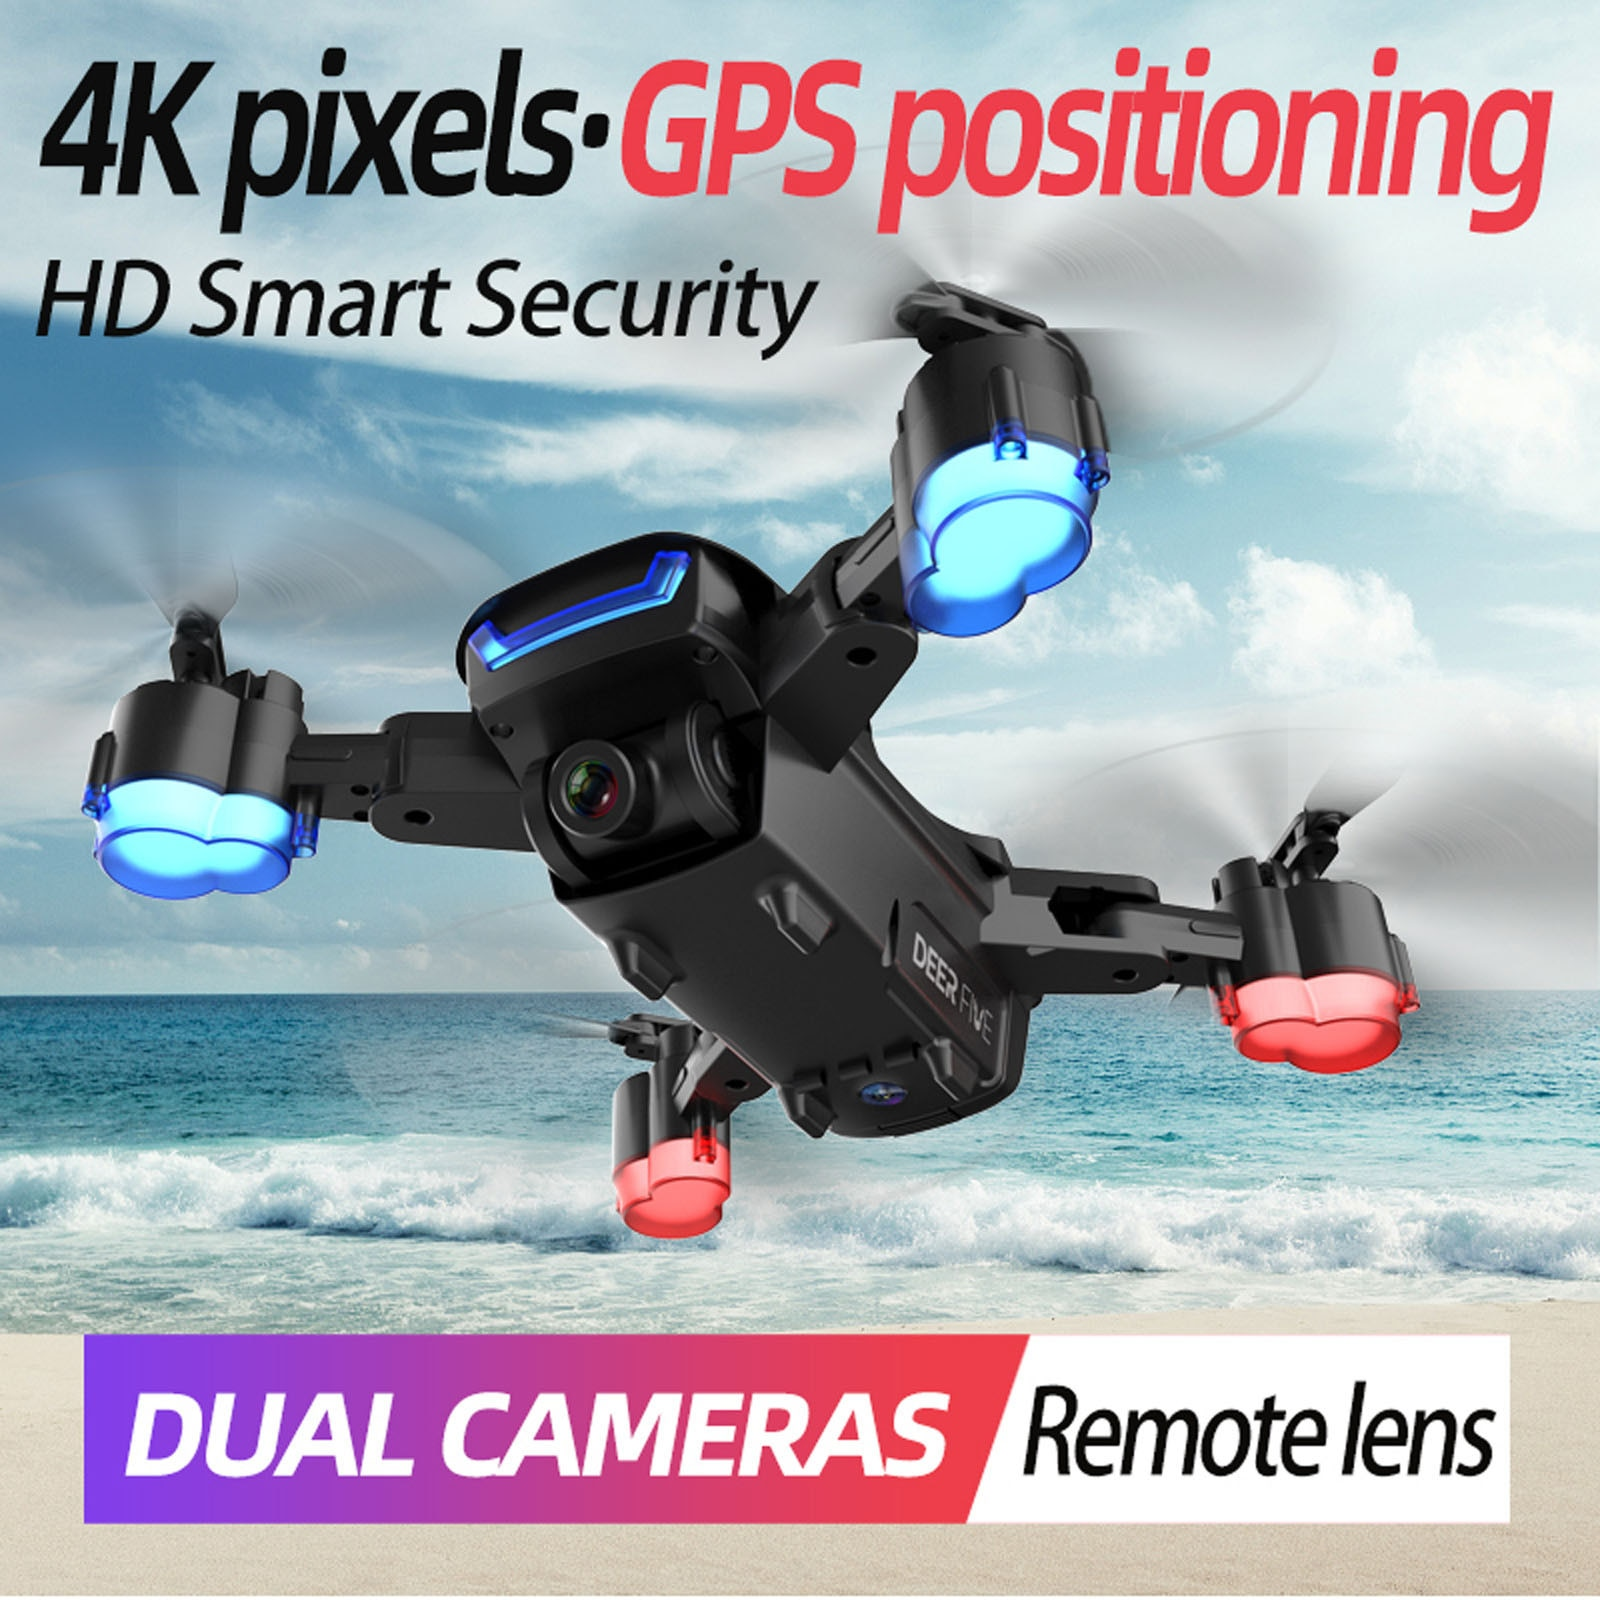 Lu5 Pro Folding Remote Control Drone Hd 4k Dual Camera Aerial Photography Brushless Gps Positioning Return Home Quadcopter #F